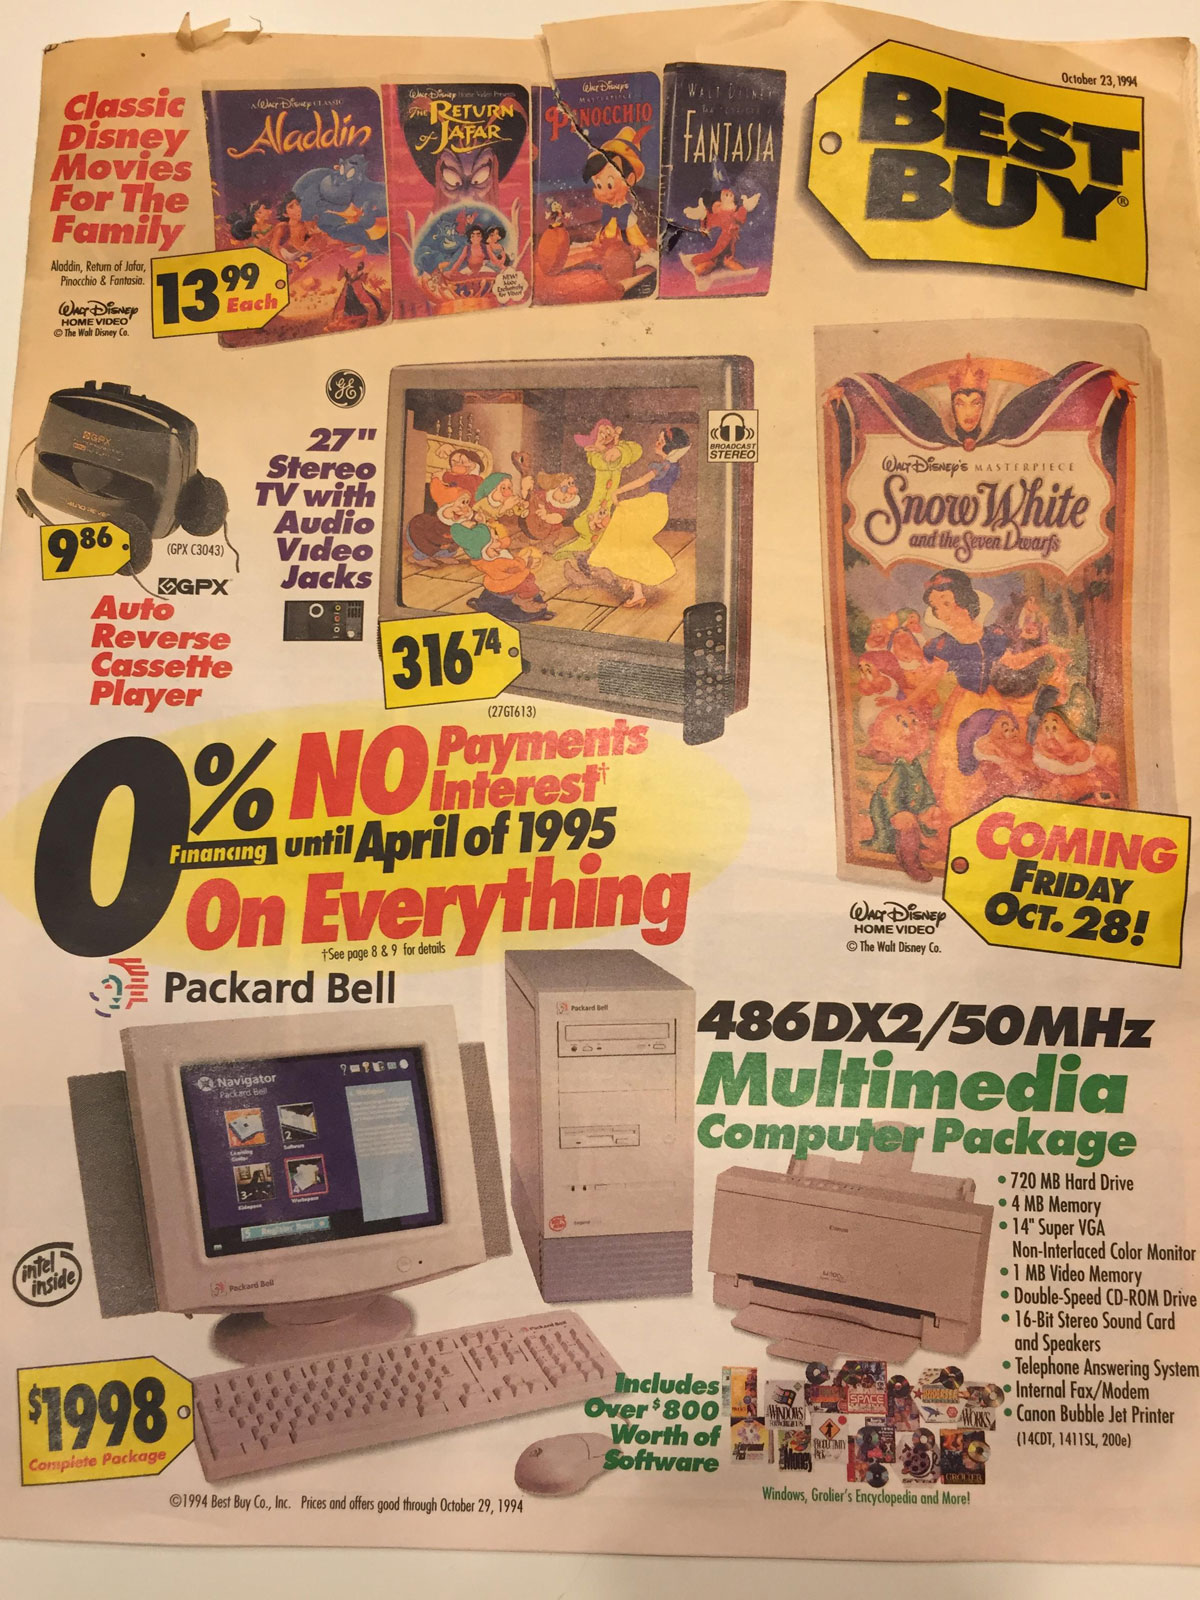 this-best-buy-flyer-from-1994-shows-how-fast-technology-has-changed-1.jpg